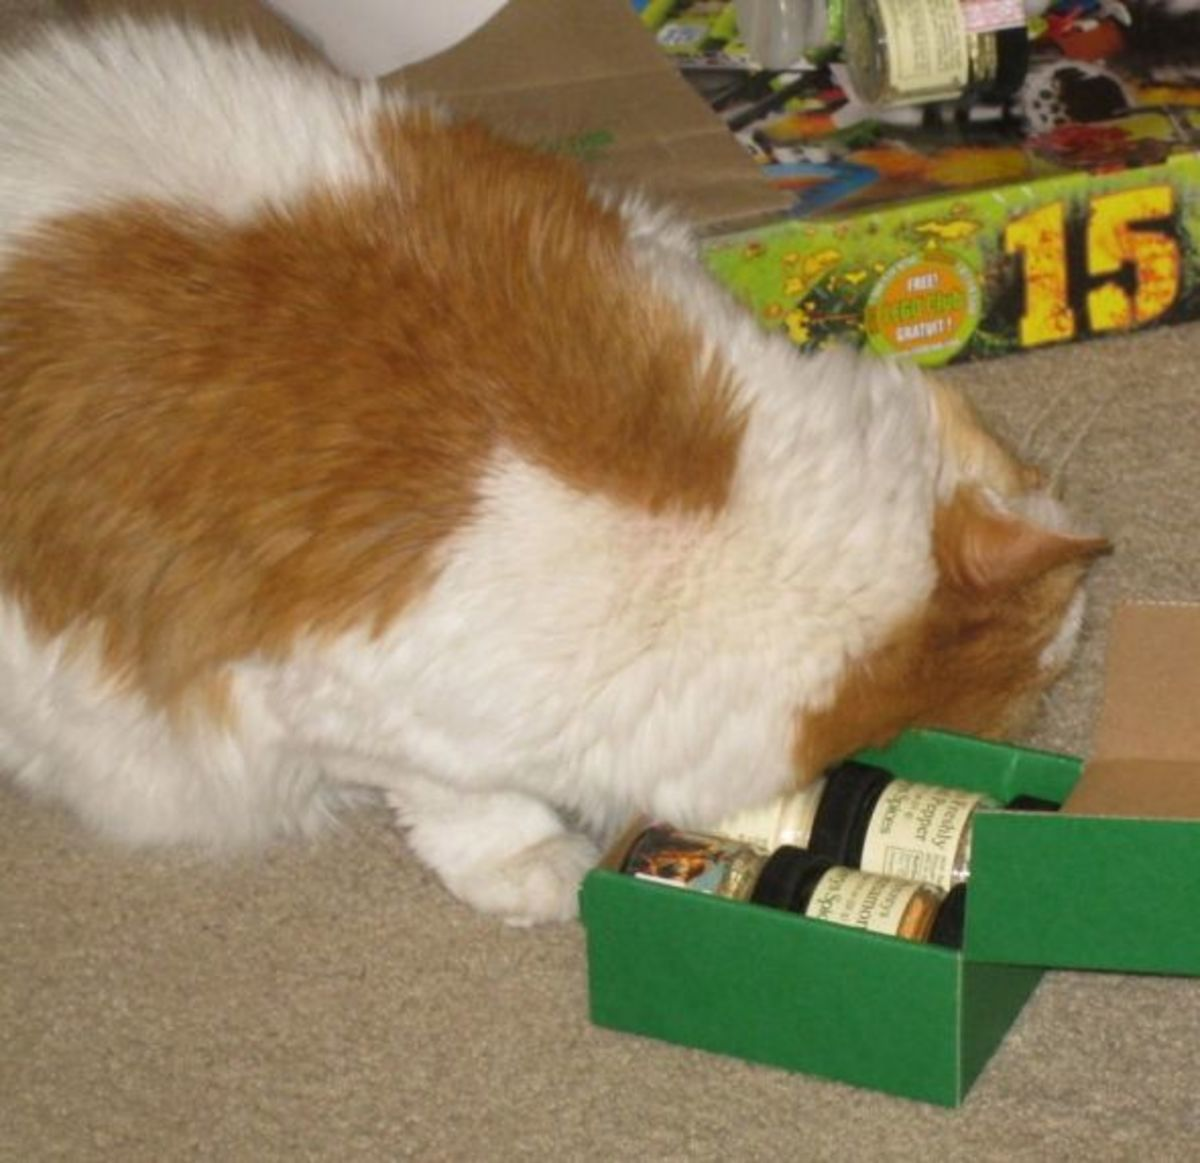 Scarlett loves some good spices. Here she is putting a whole new spin on spice rub. All photos here by Peggy Hazelwood.